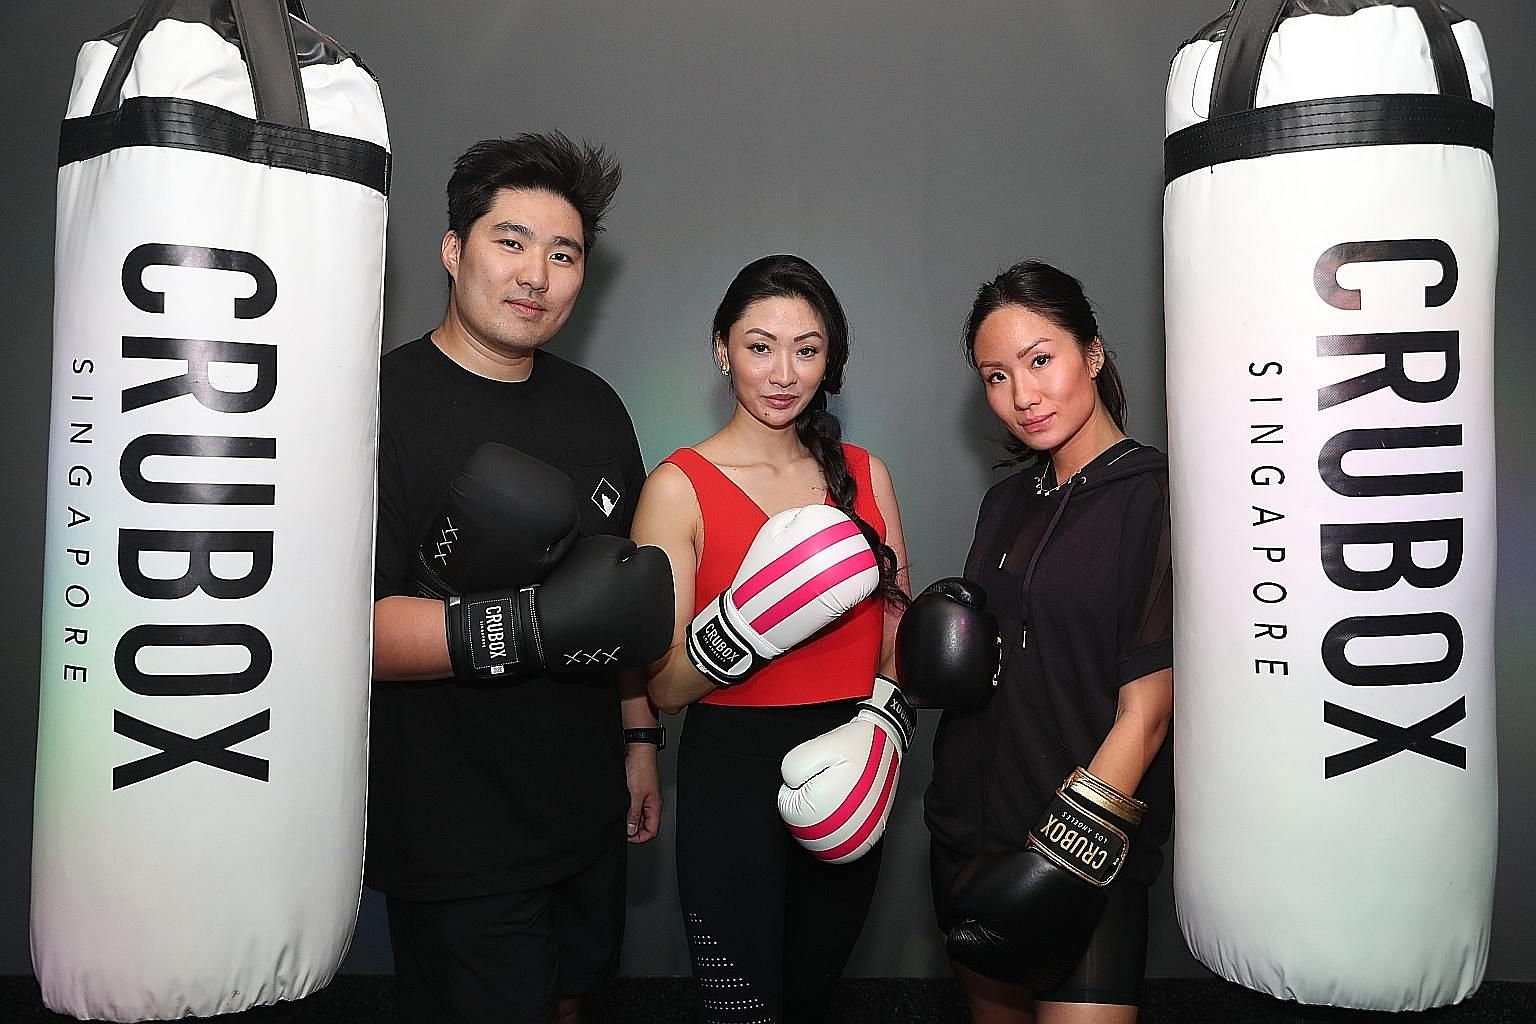 CruBox co-founders and siblings (from far left) Calvin Ding, Valerie Ding and Bebe Ding.